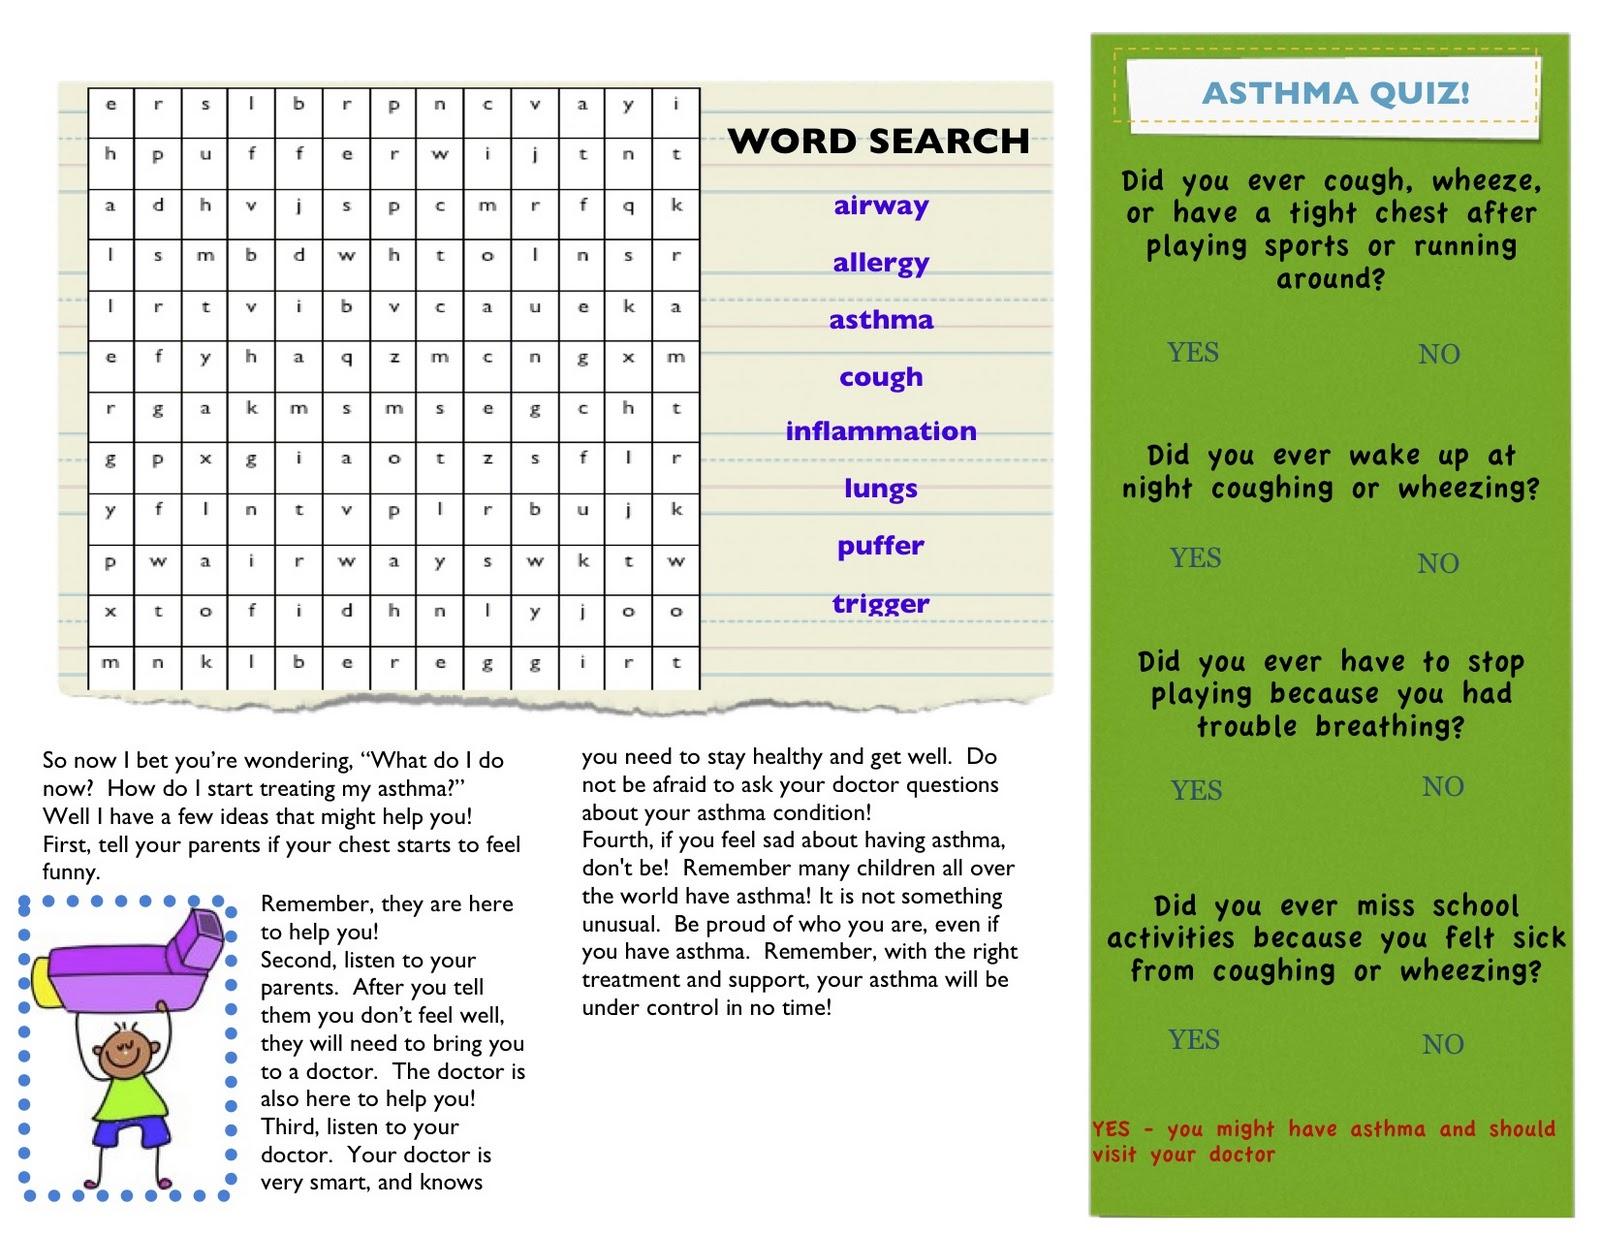 Asthma Awareness For Adults And Children - Asthma brochure template